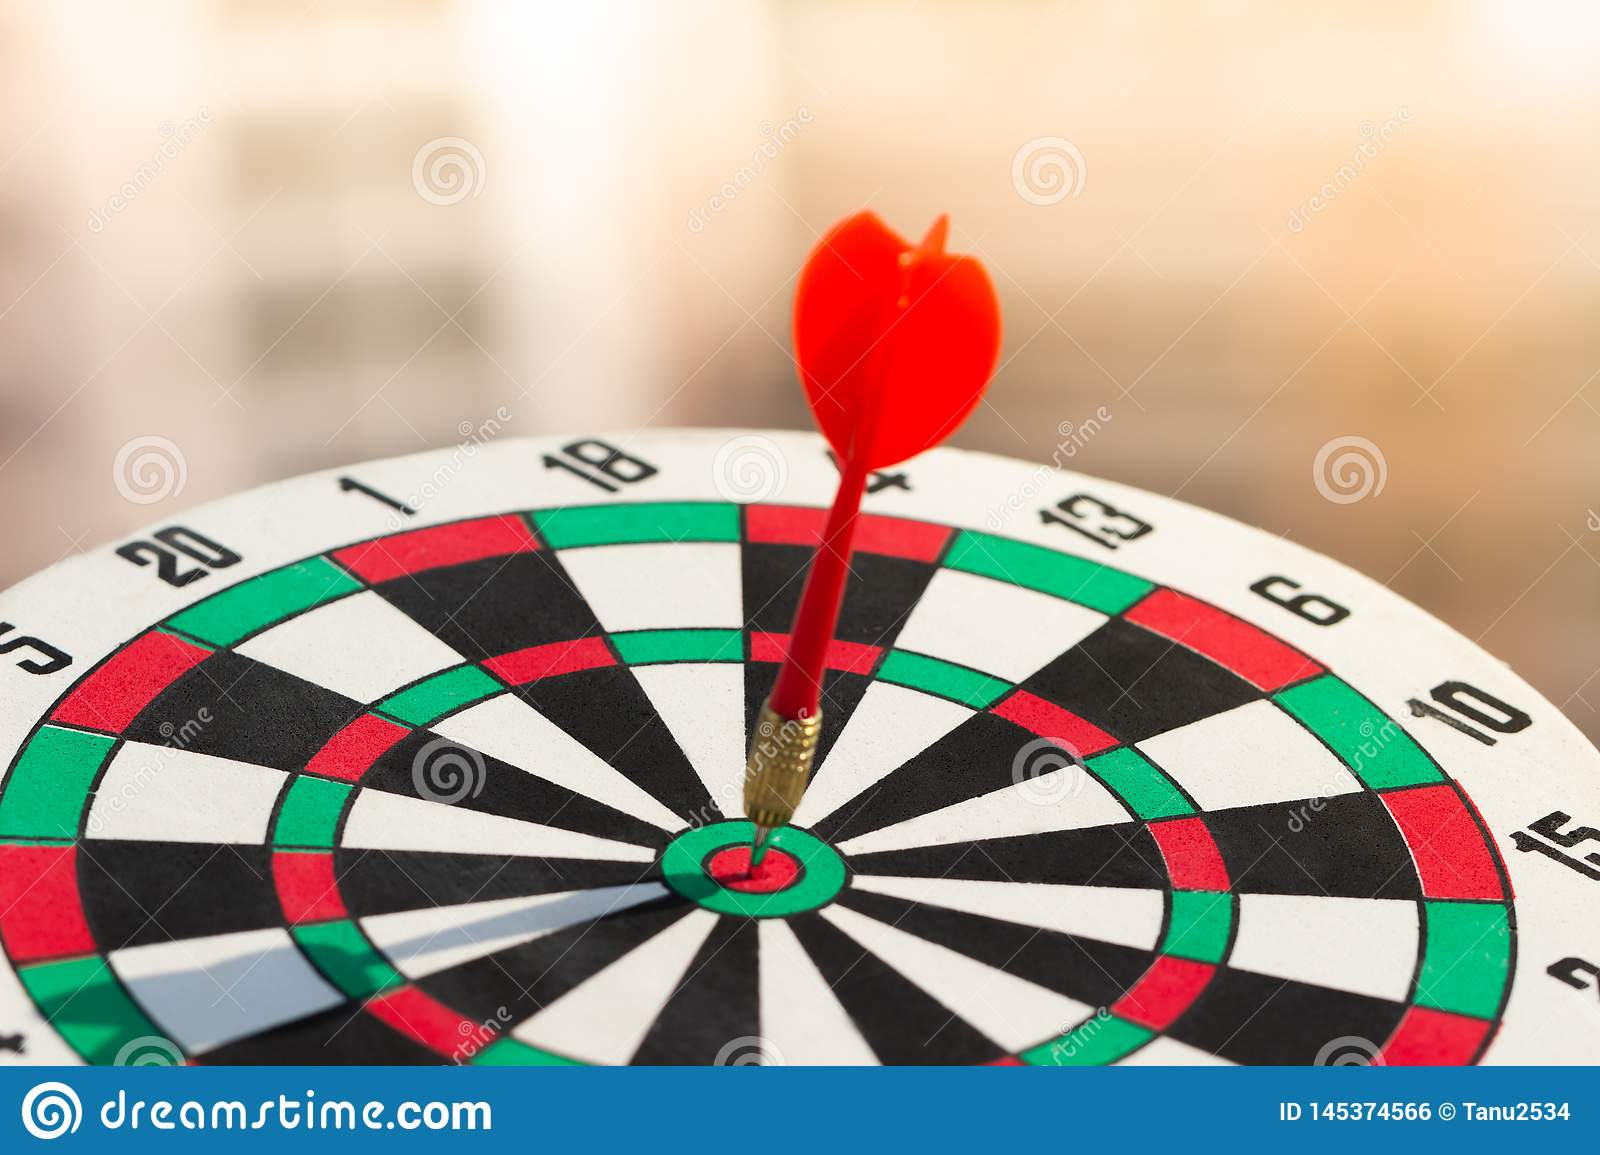 Darts arrow hitting in the target center of dartboard. concept business goal to marketing success.